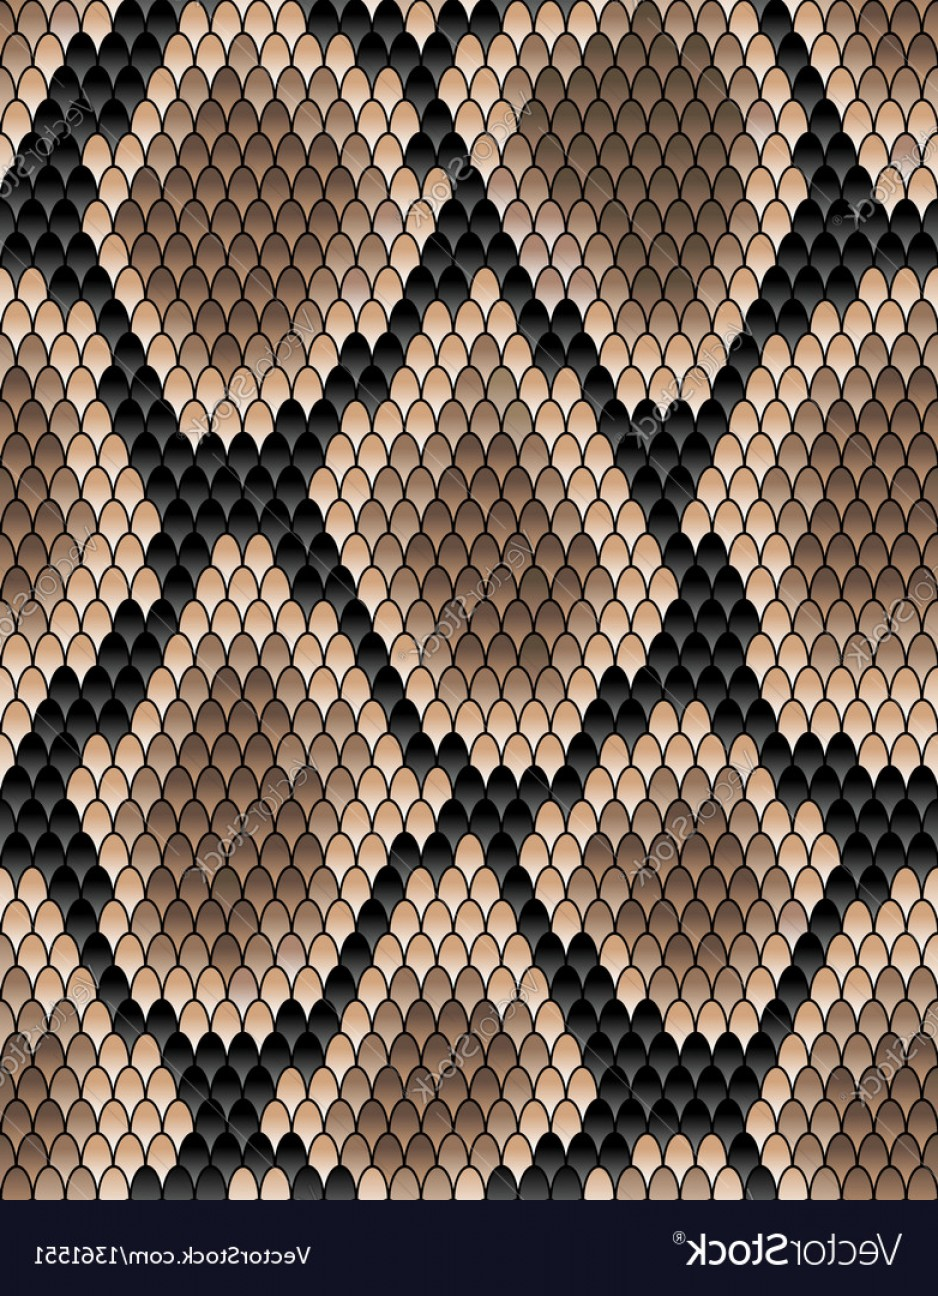 Rattlesnake Skin Vector: Seamless Pattern Of Snake Skin Vector